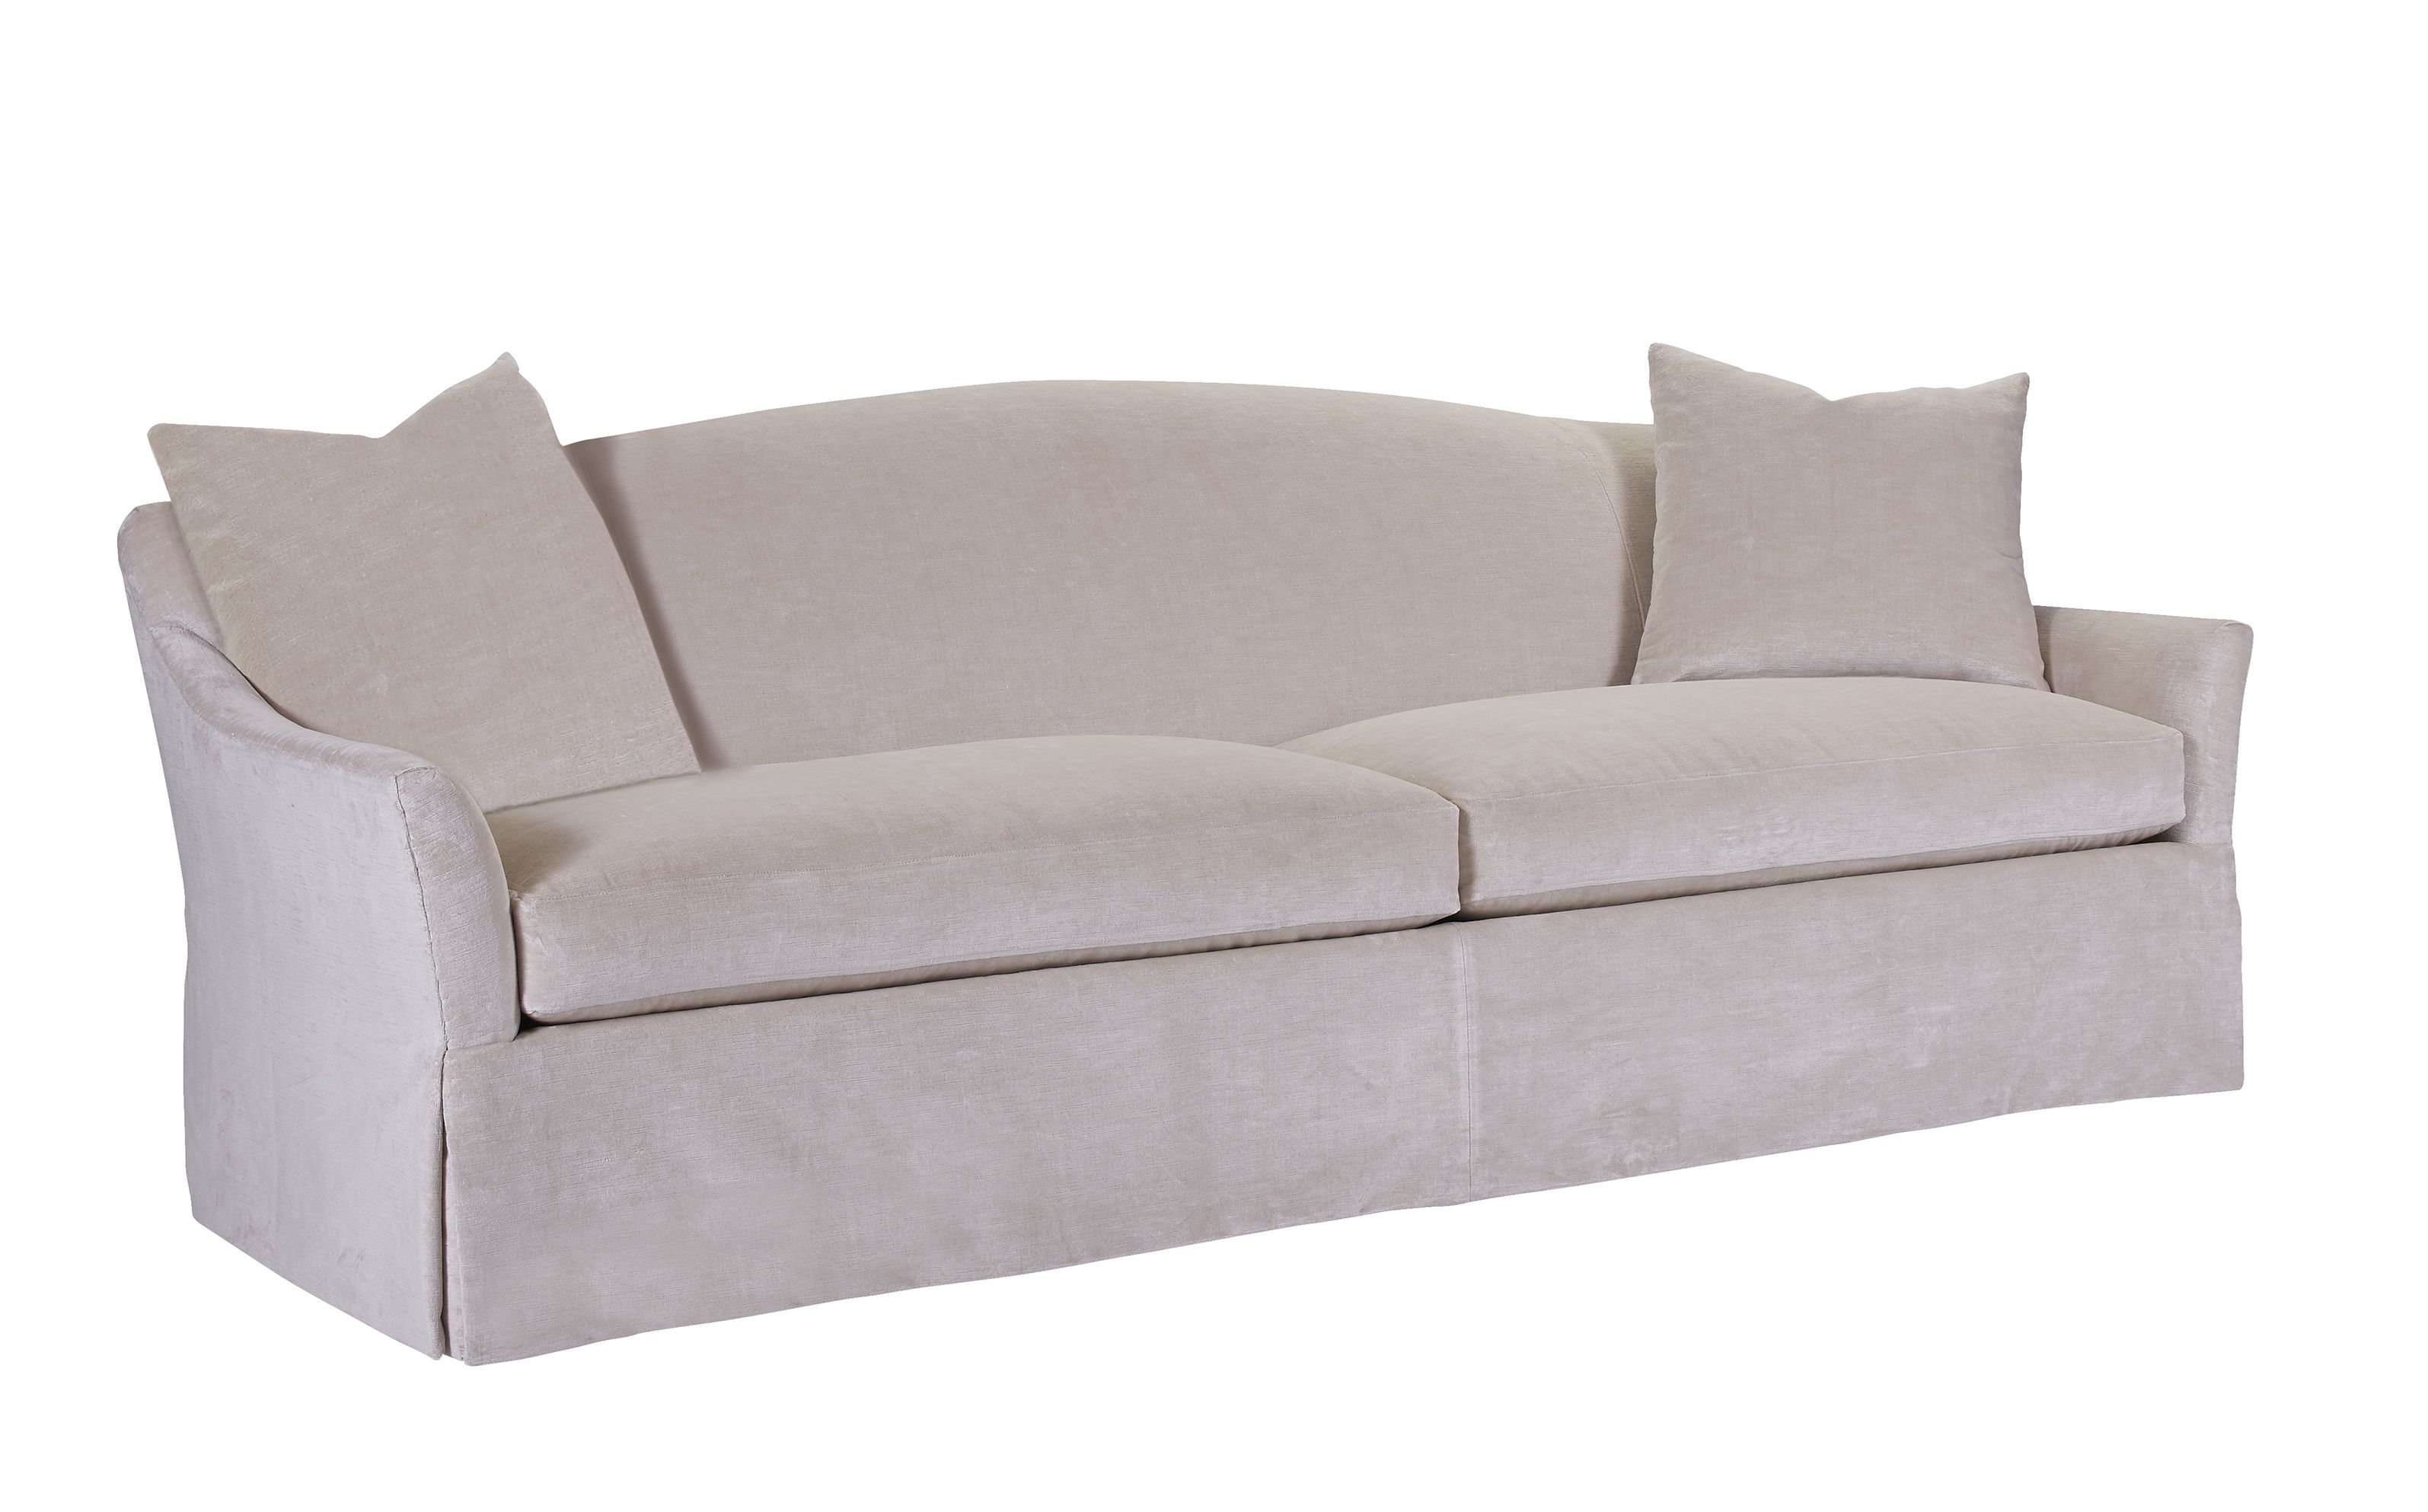 Willow Sofa With A Long Gentle Curve To The Back The